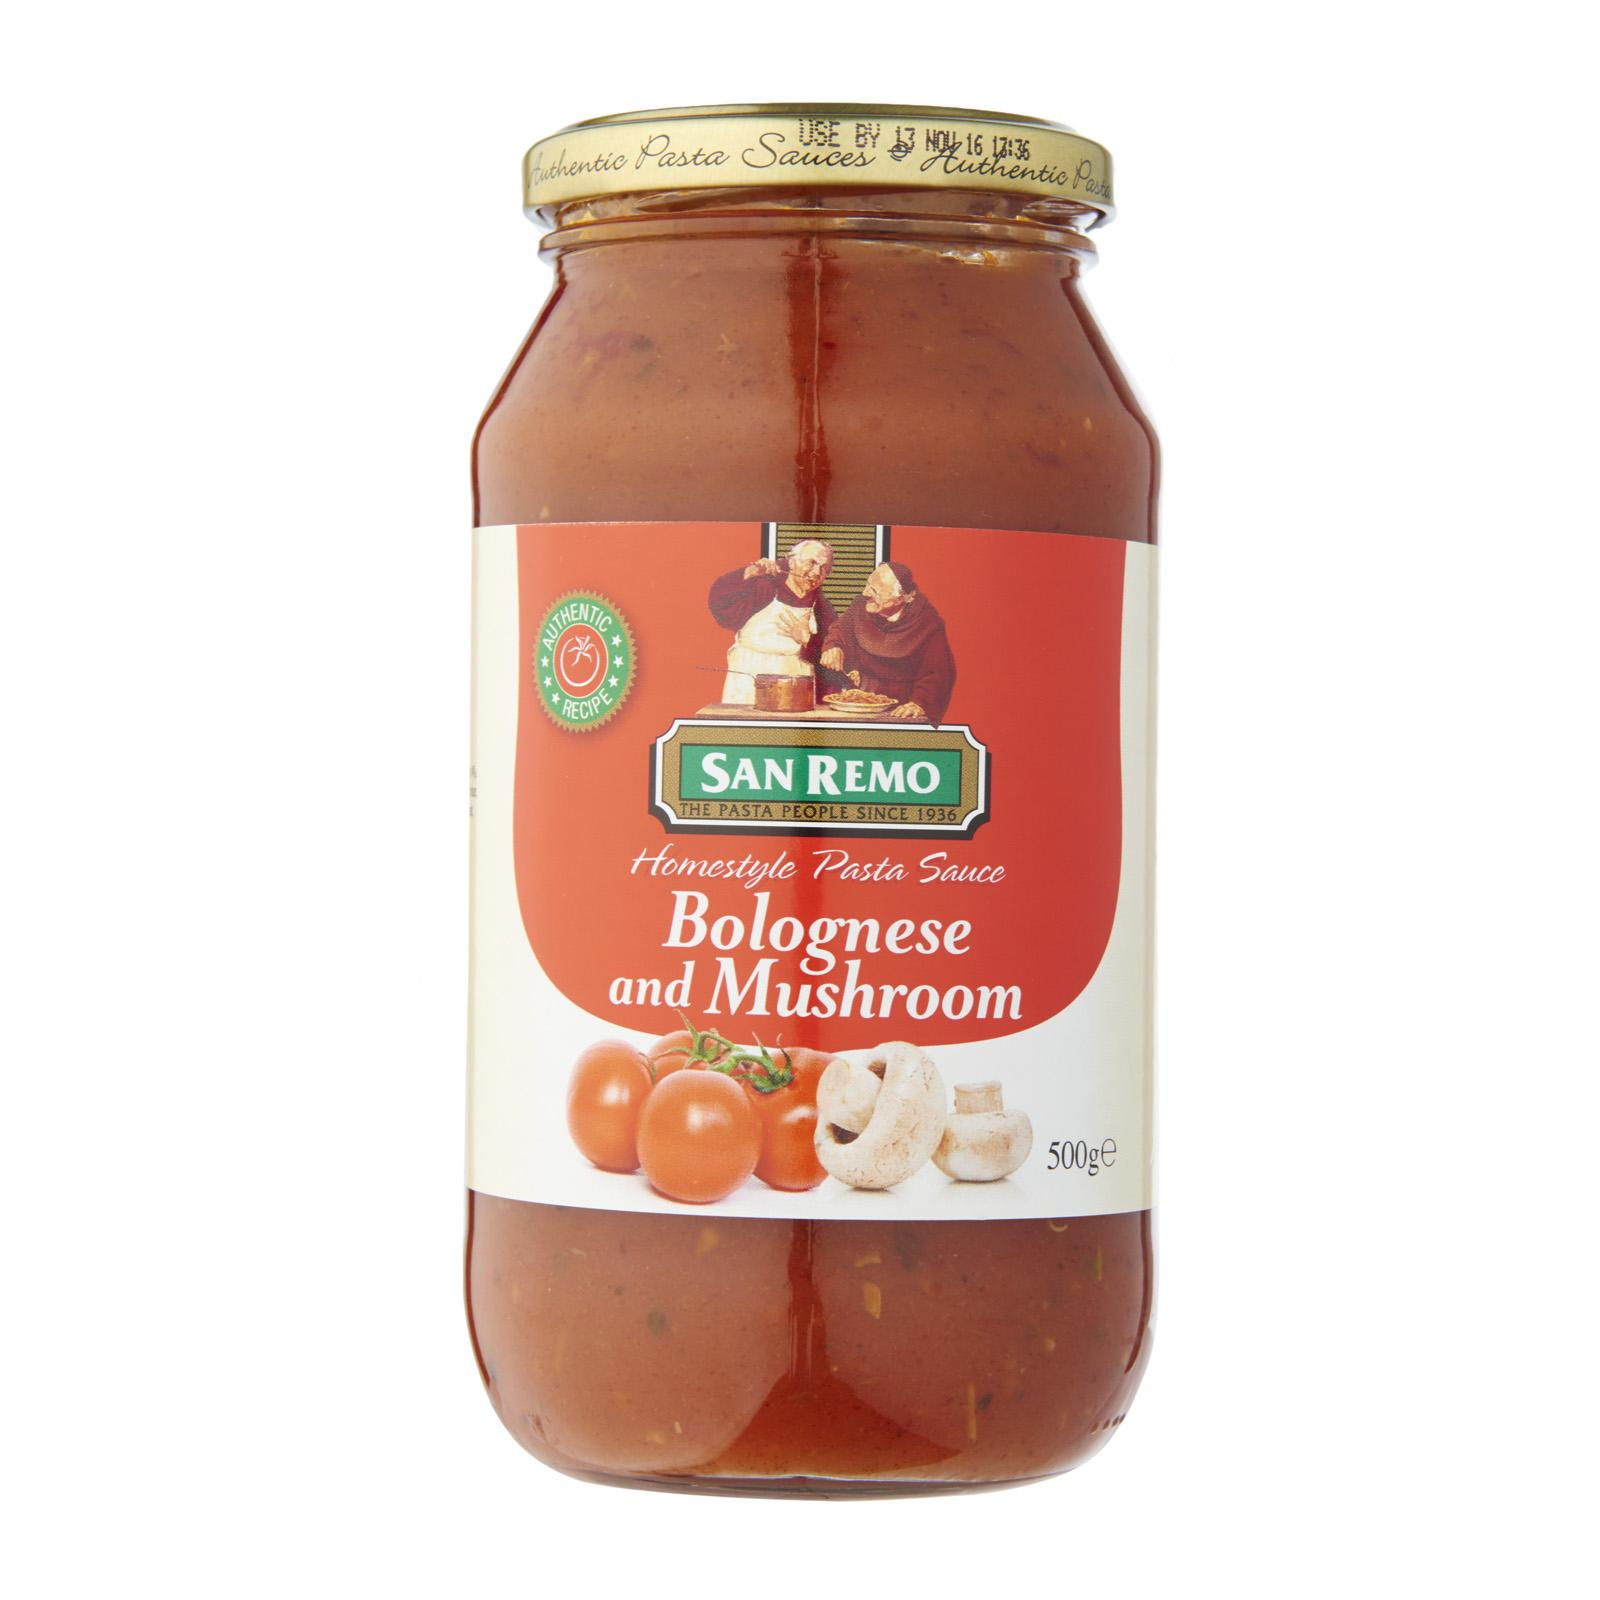 San Remo Pasta Sauce - Bolognese and Mushroom